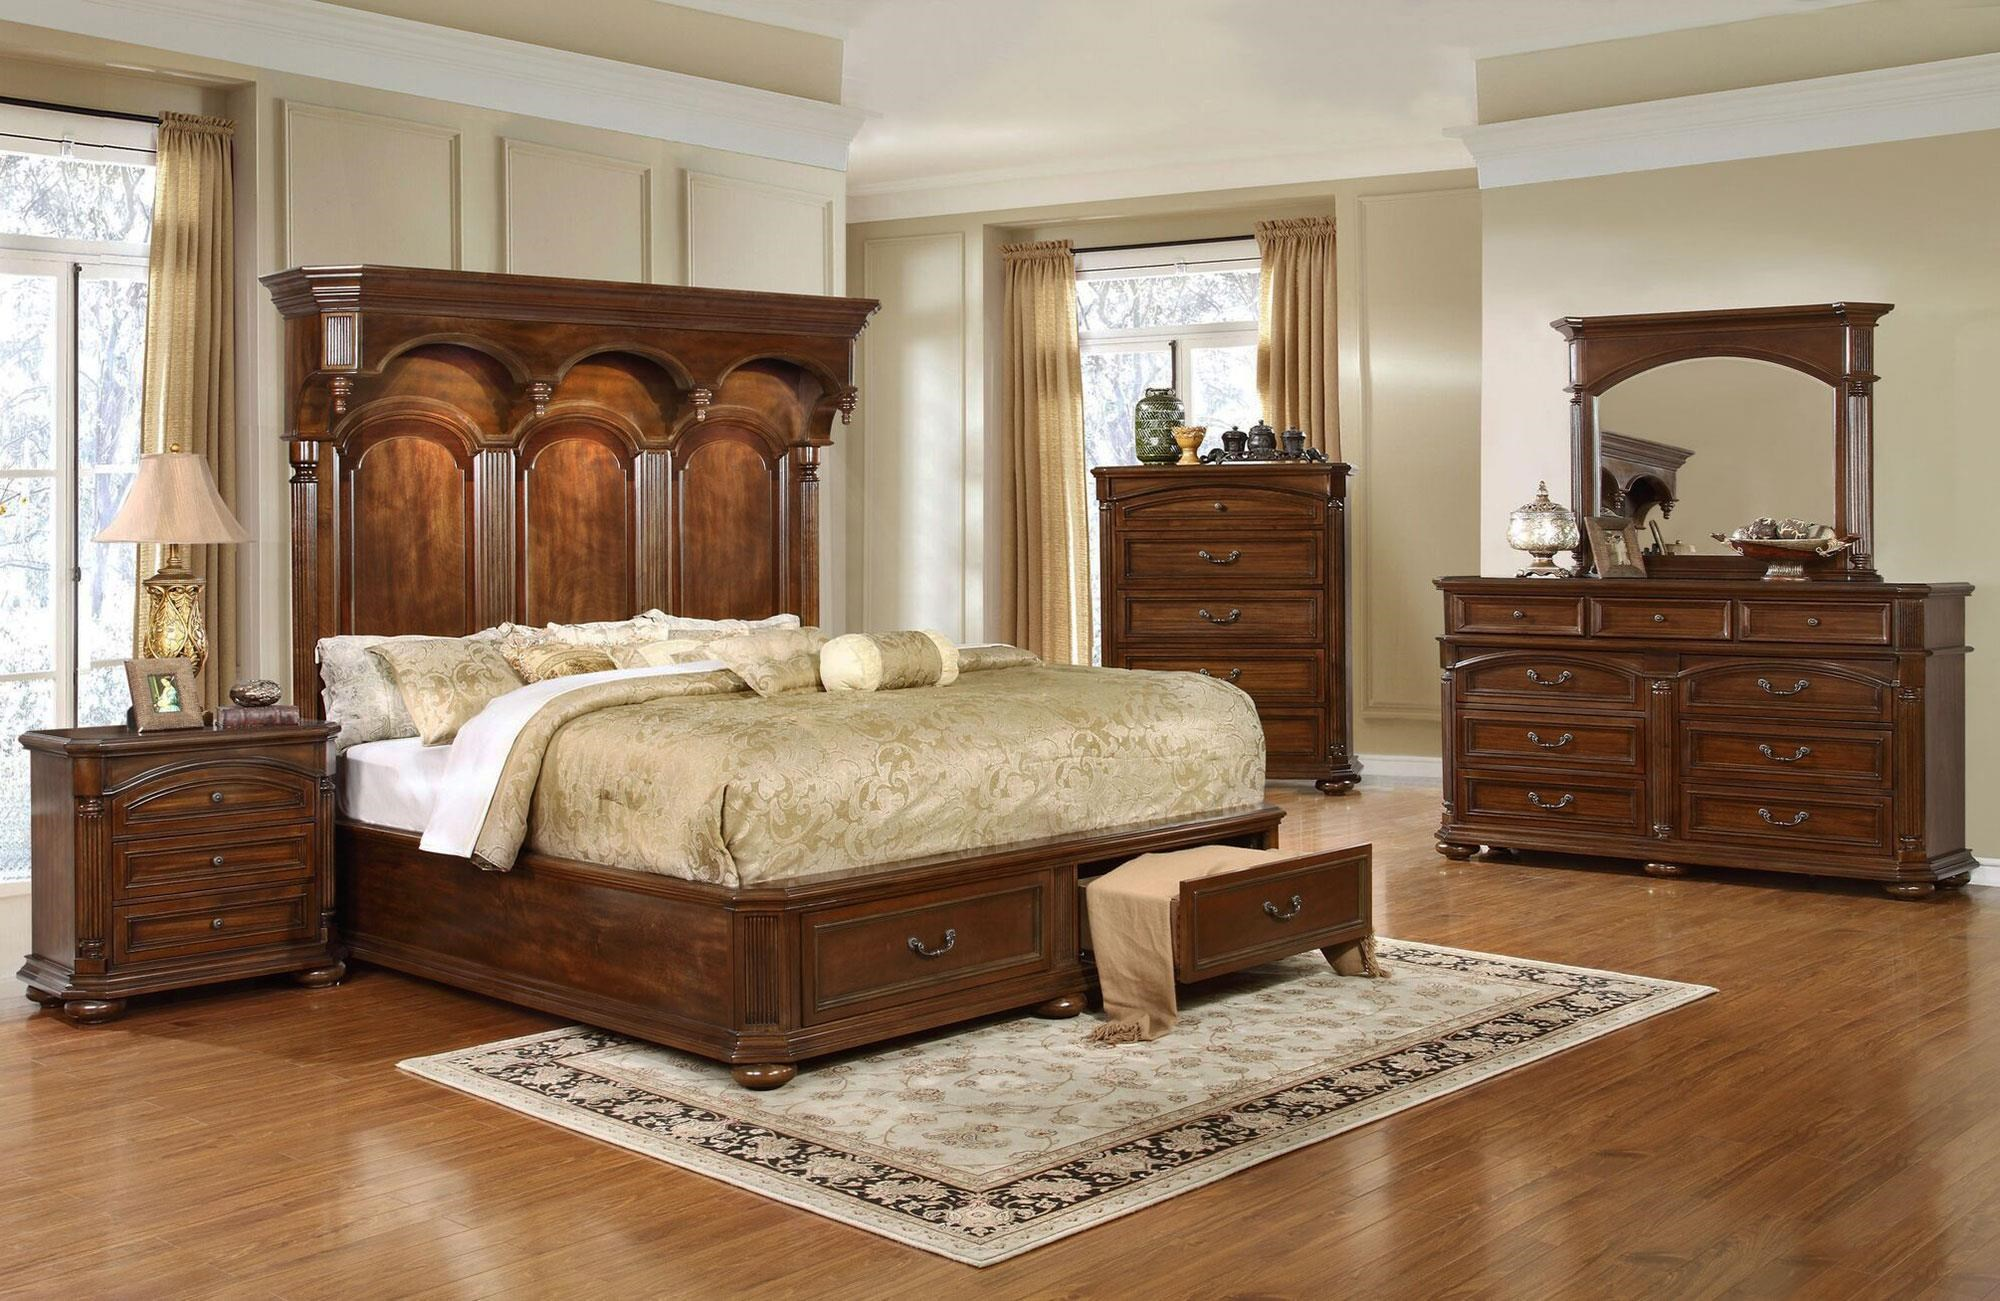 Lifestyle Empire 5PC King Storage Bedroom Set - Item Number: C6258A-5PC-KBR